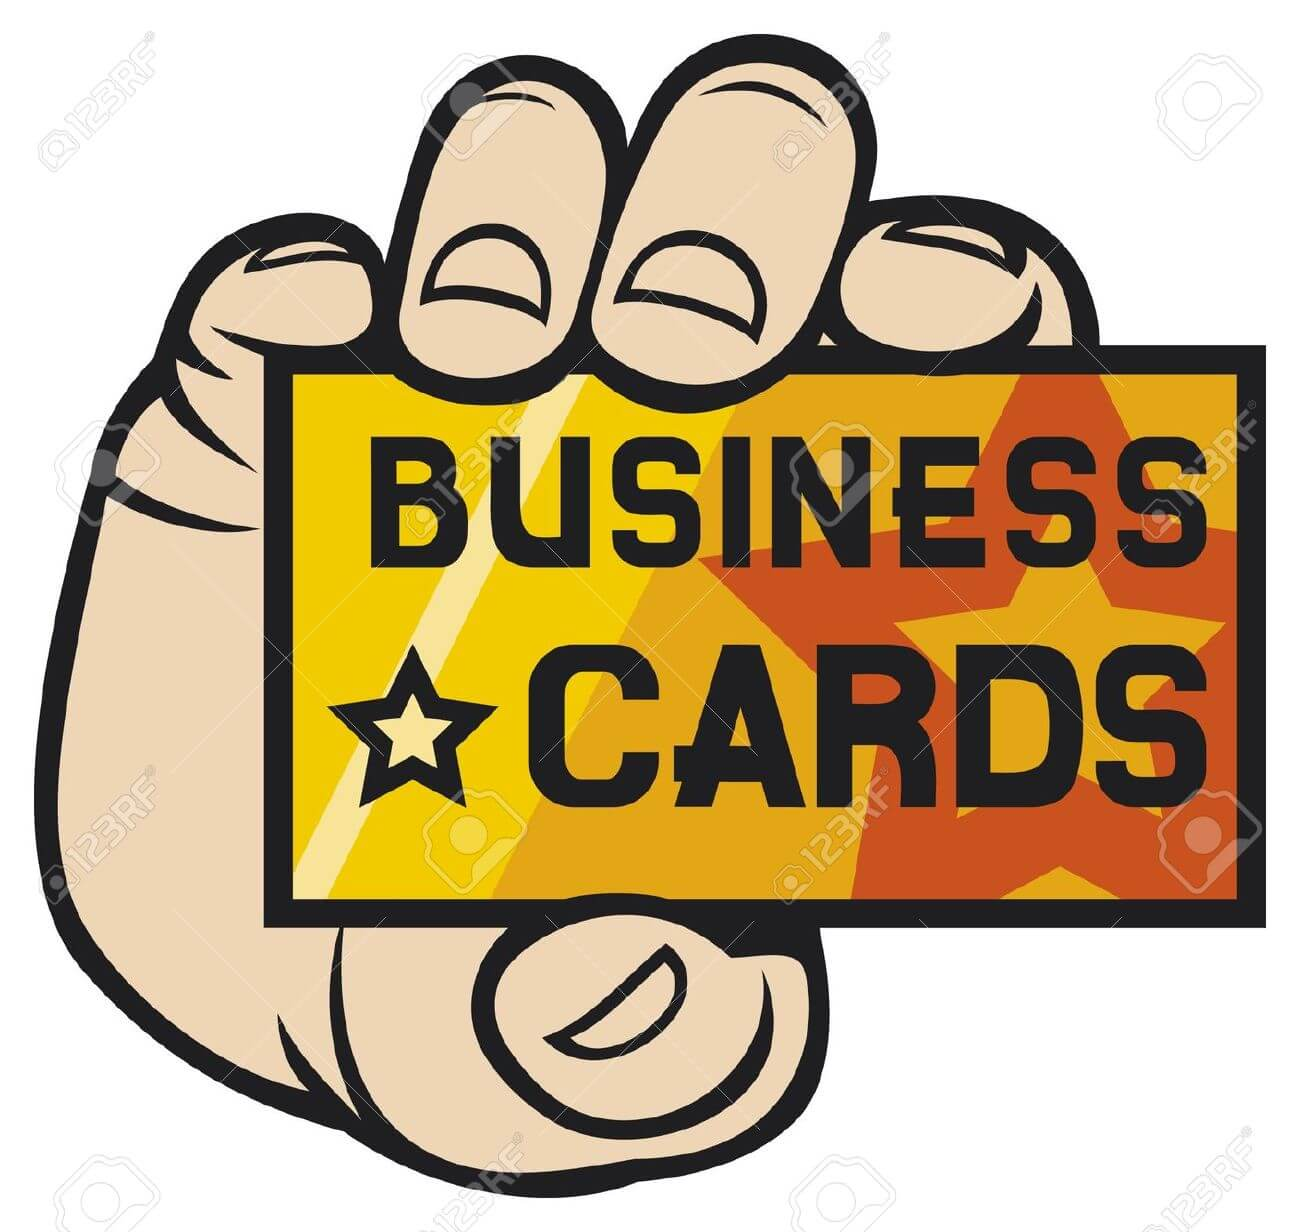 Business Card Clip Art Free. hand holding business card: .